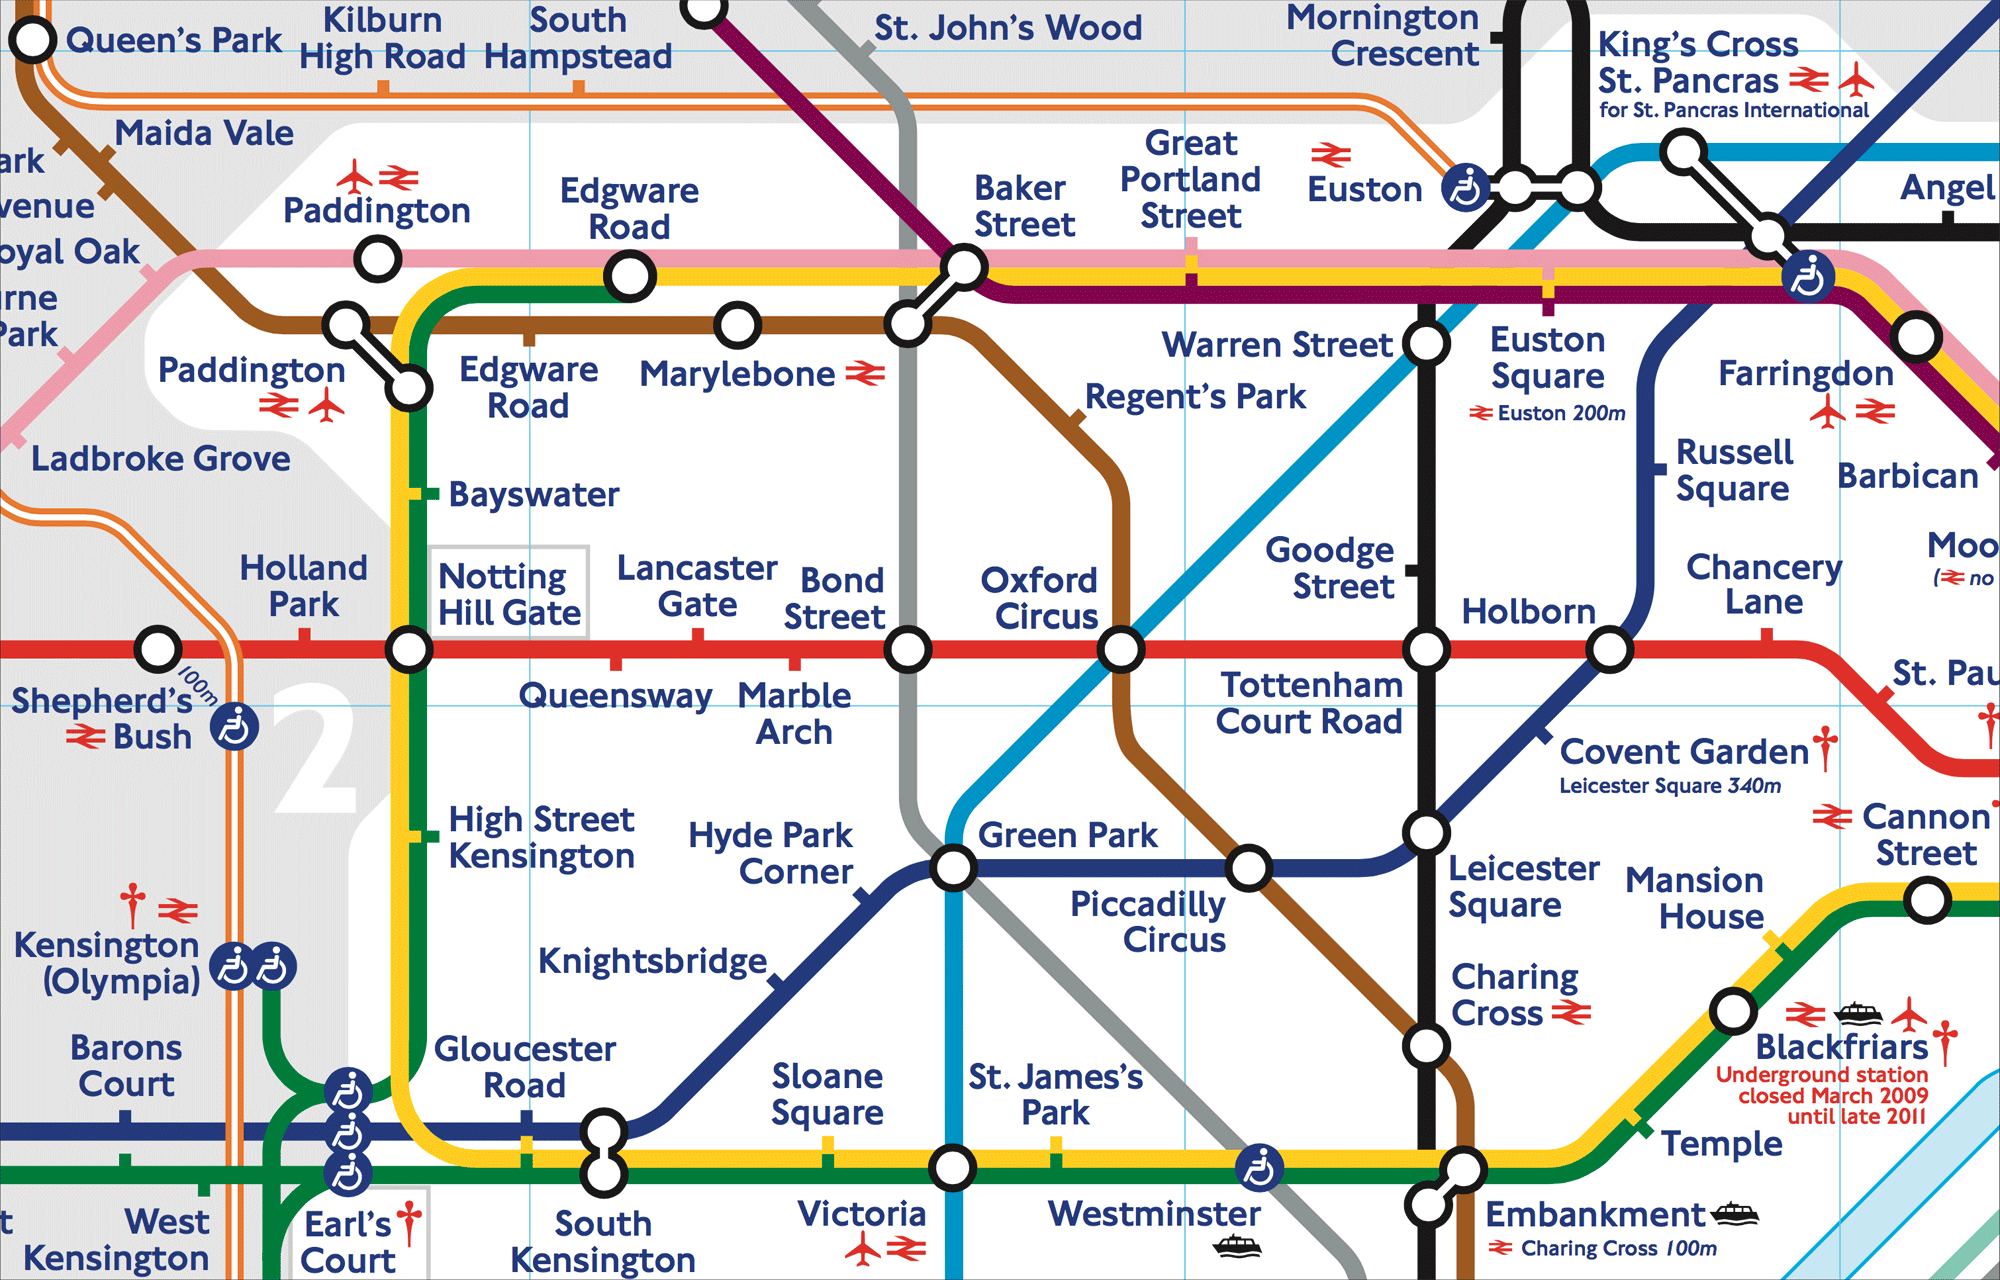 Modern London Underground map